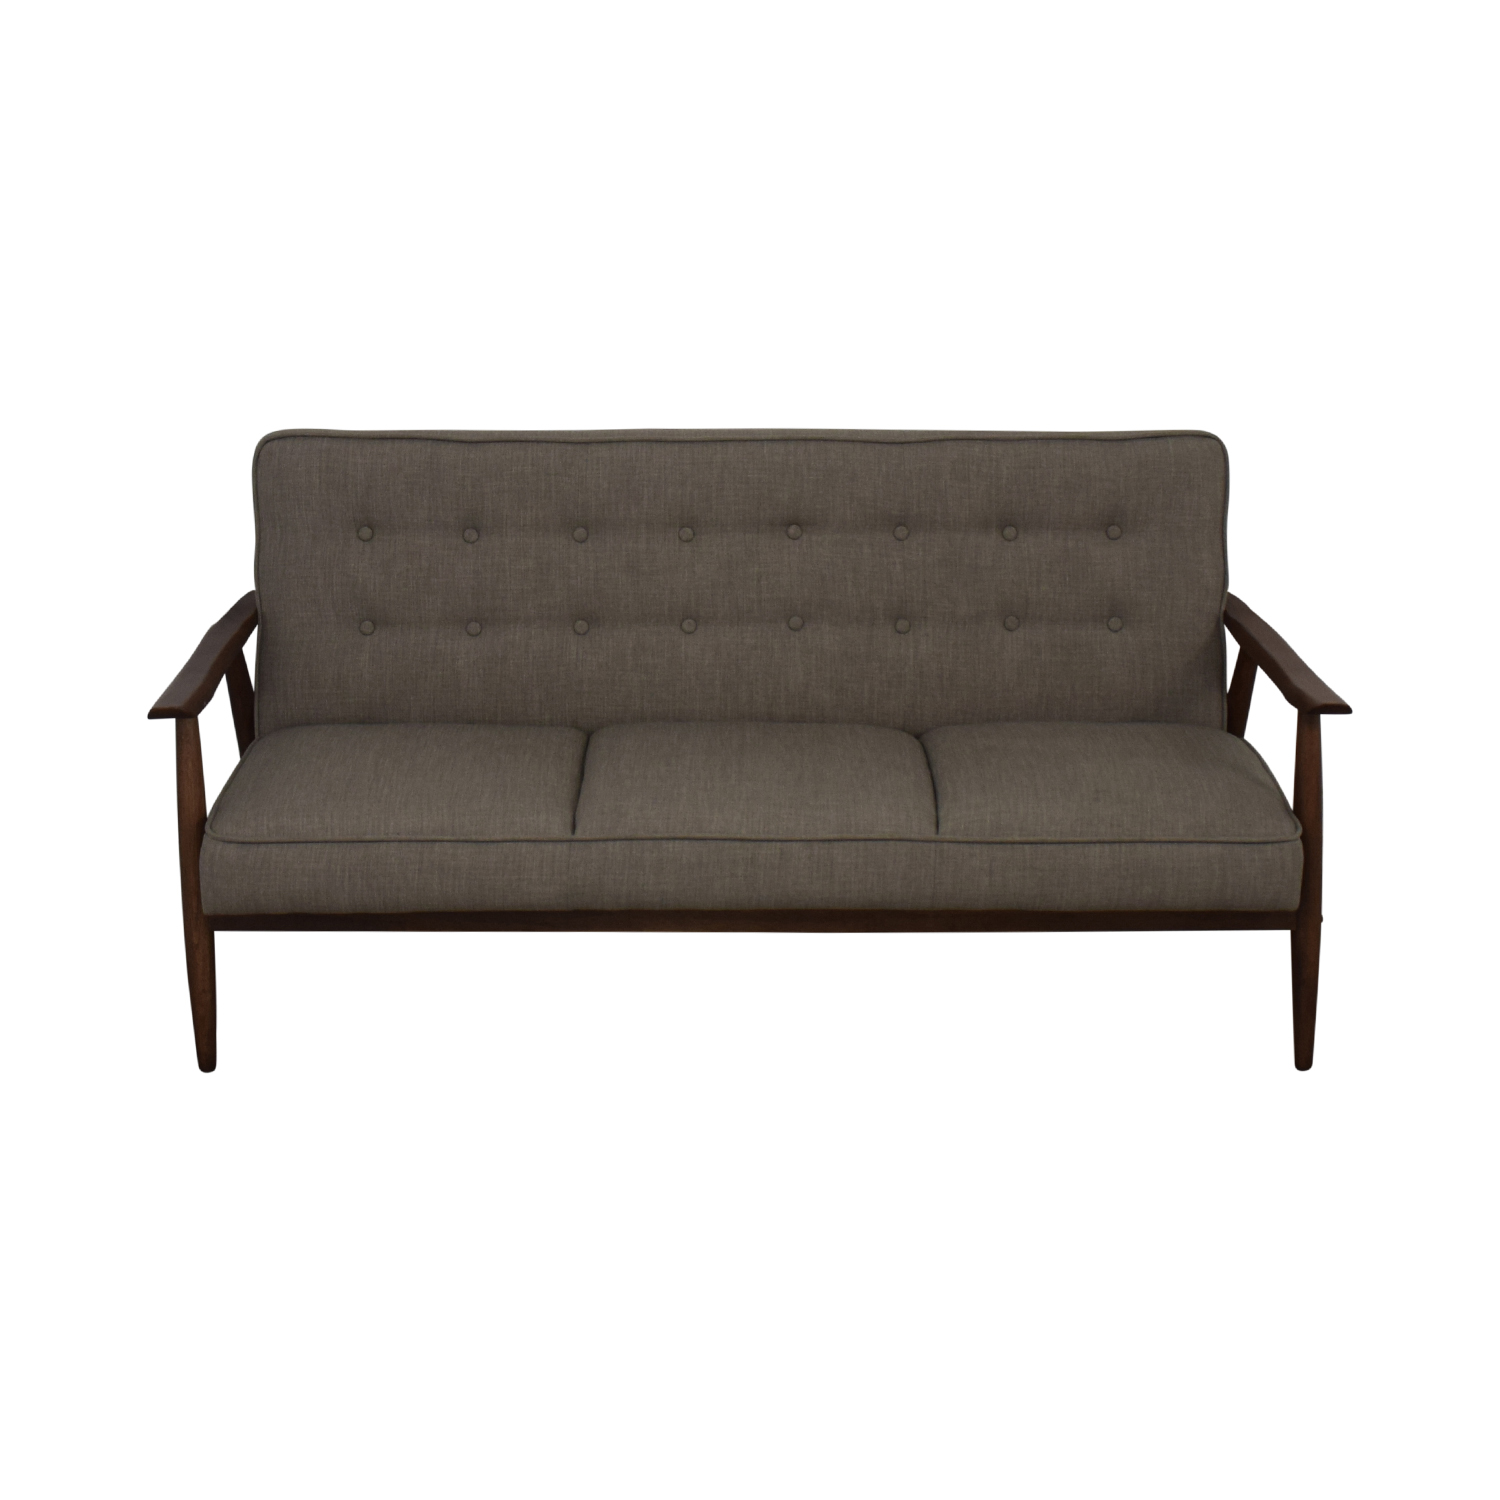 Urban Outfitters Urban Outfitters Grey Wyatt Sofa